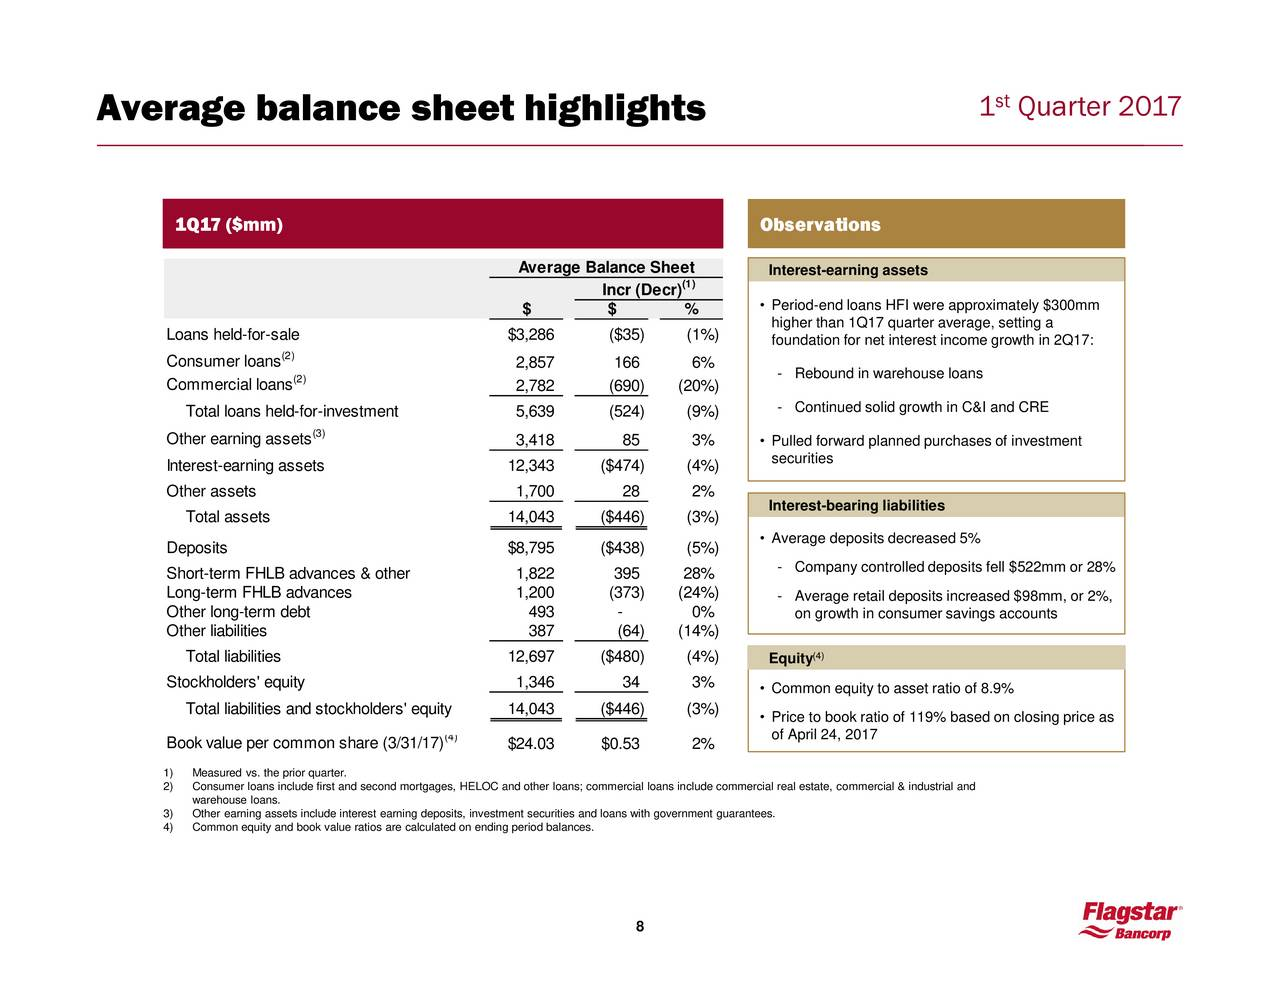 flagstar companies inc abridged Case denny's - download as word doc  womena fivefold increase since 1993a comprehensive fair share agreement between flagstar companies.